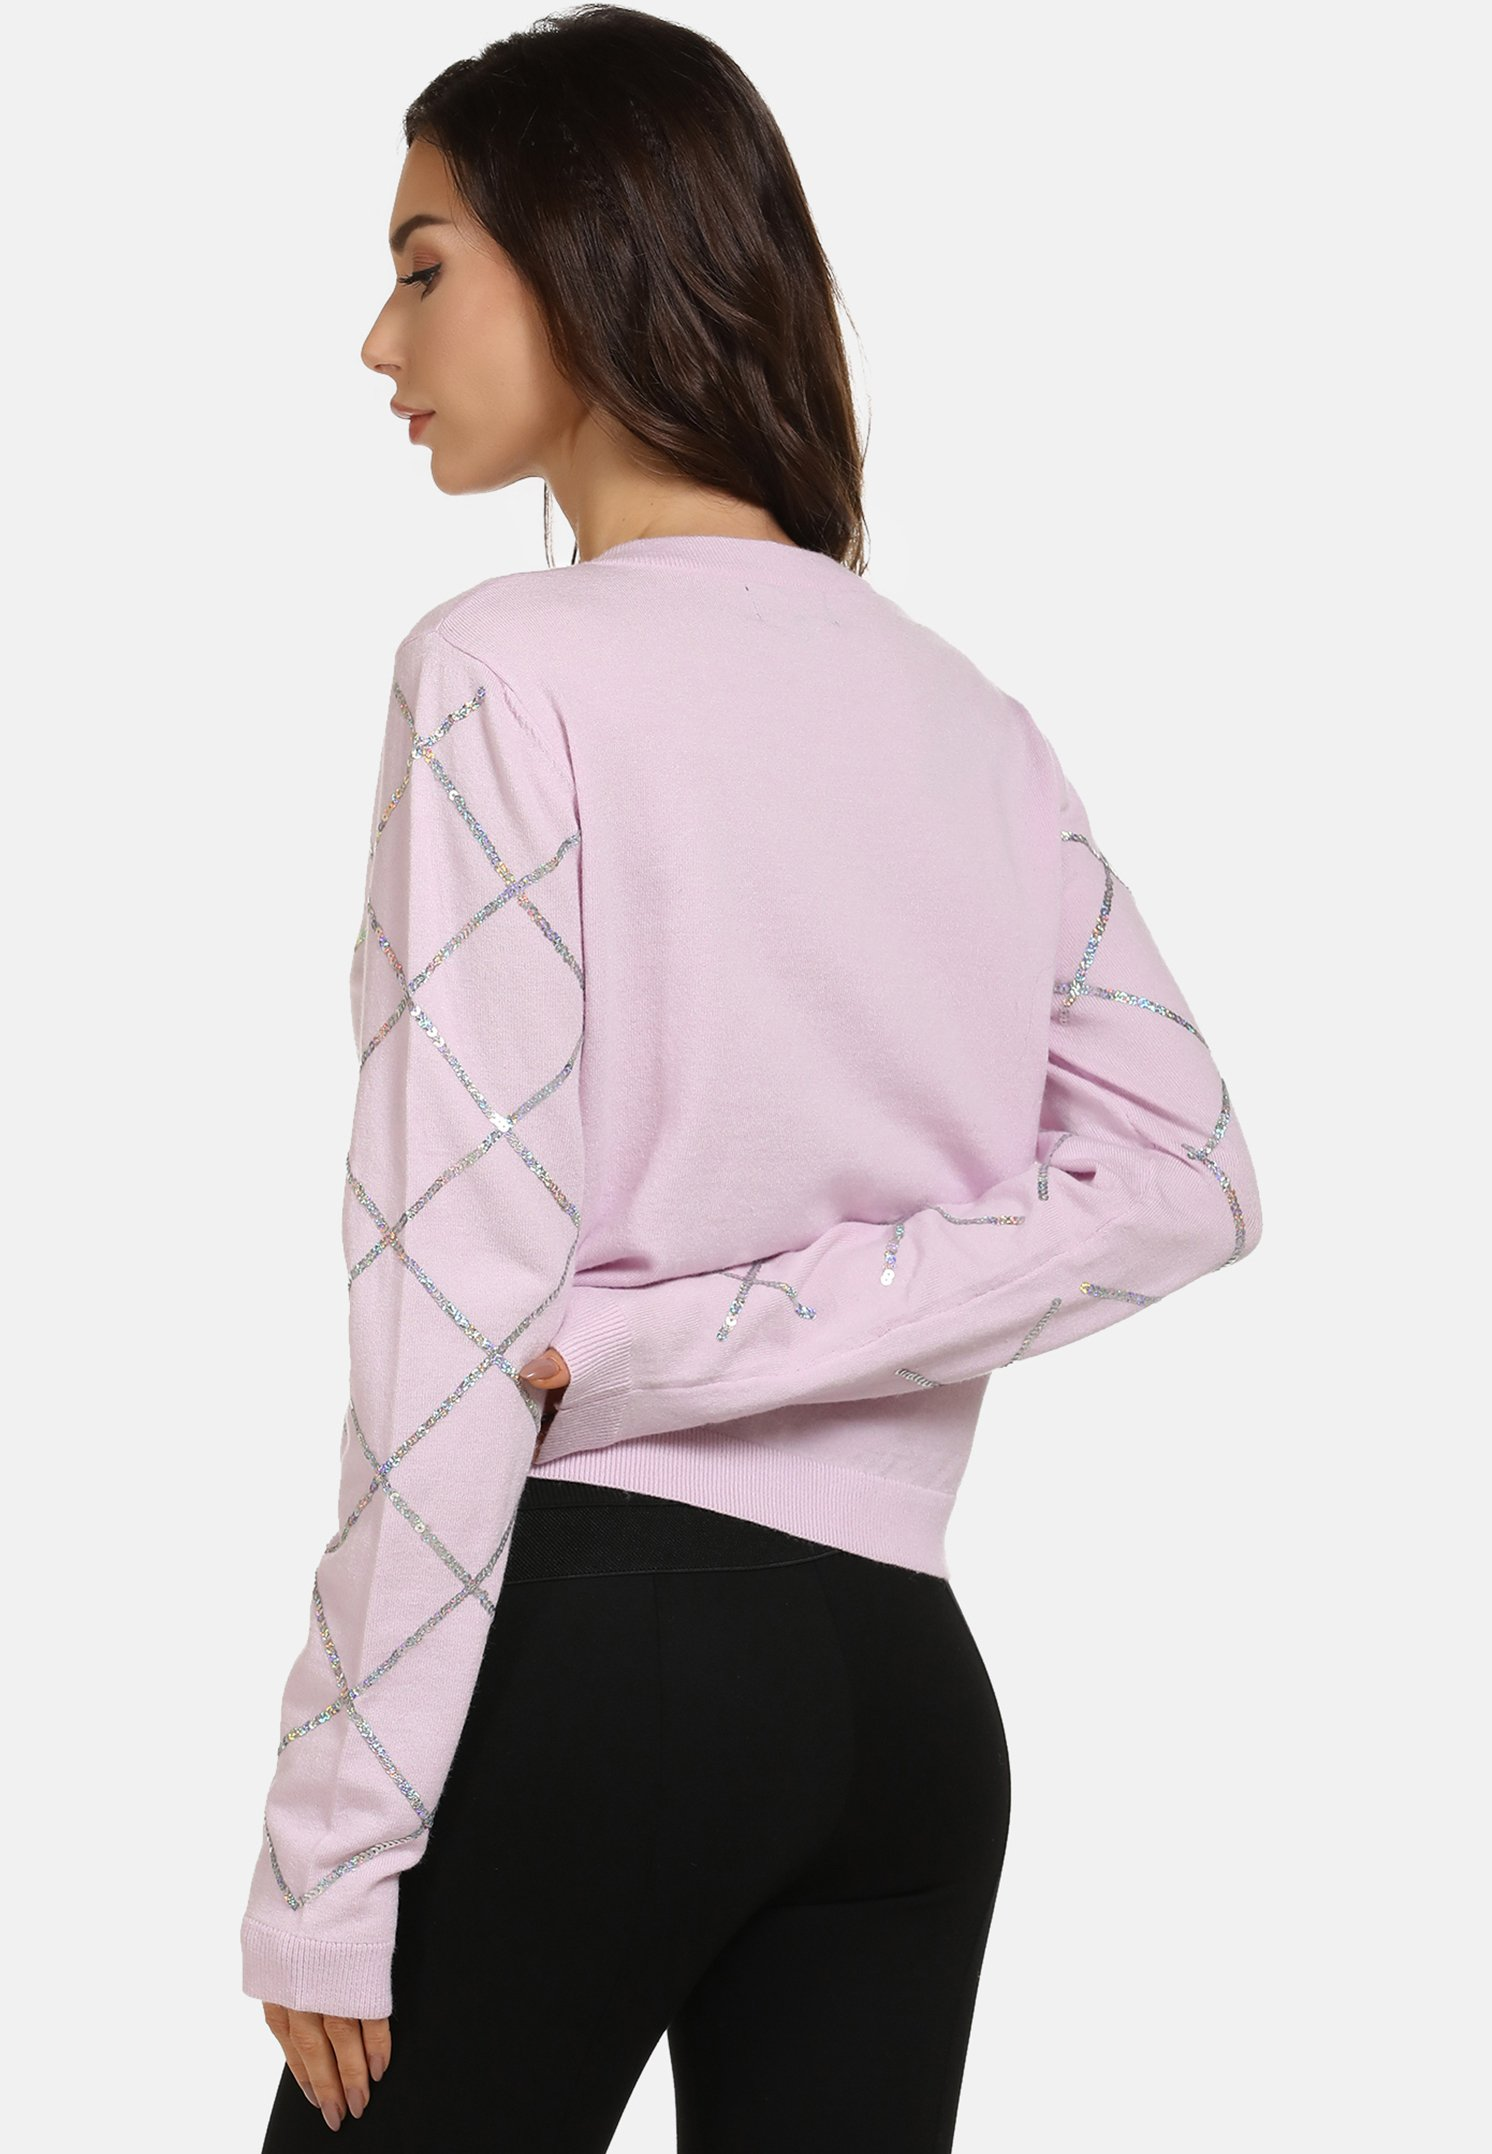 Outlet Store Women's Clothing faina Jumper pink 2UaVLjfnu